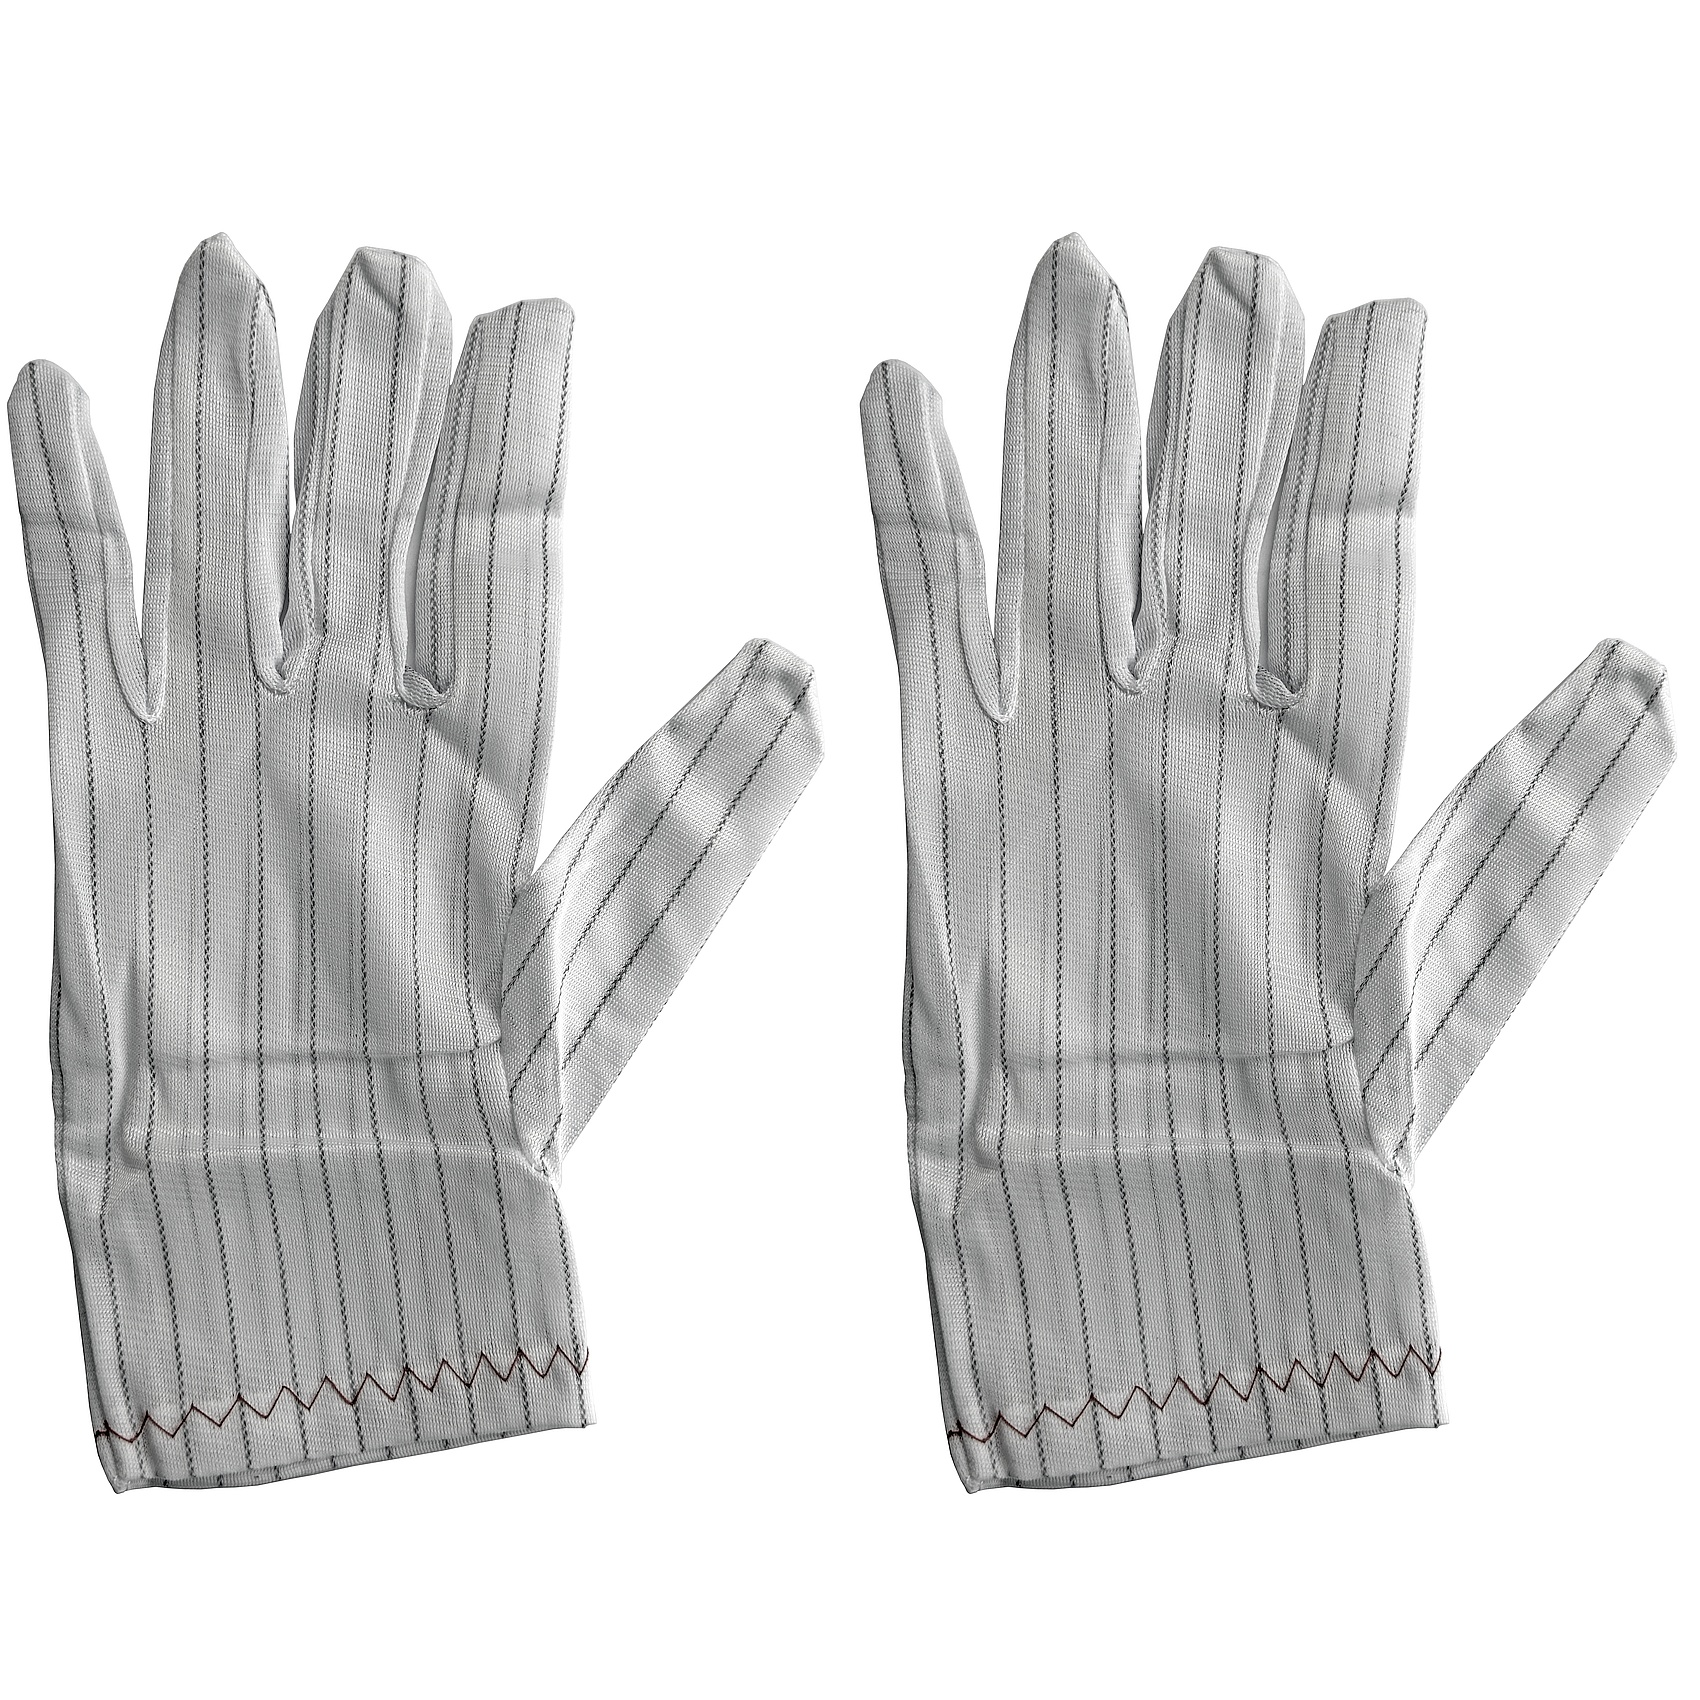 Static dissipative clean room glove 10 pair